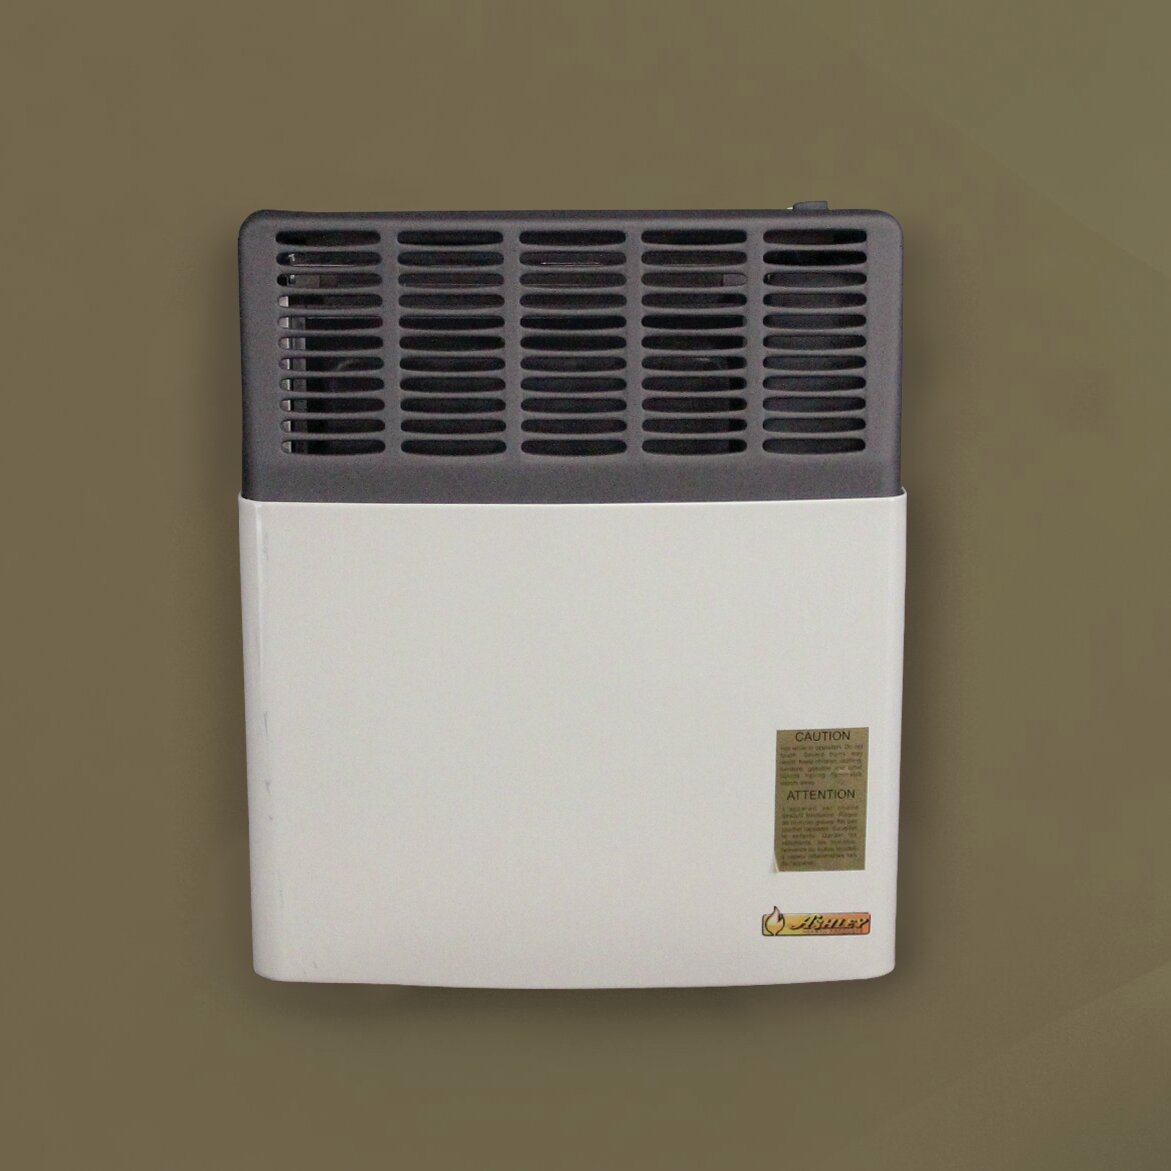 Ashley Hearth 11,000 BTU LP Gas Direct Vent Heater | Wayfair